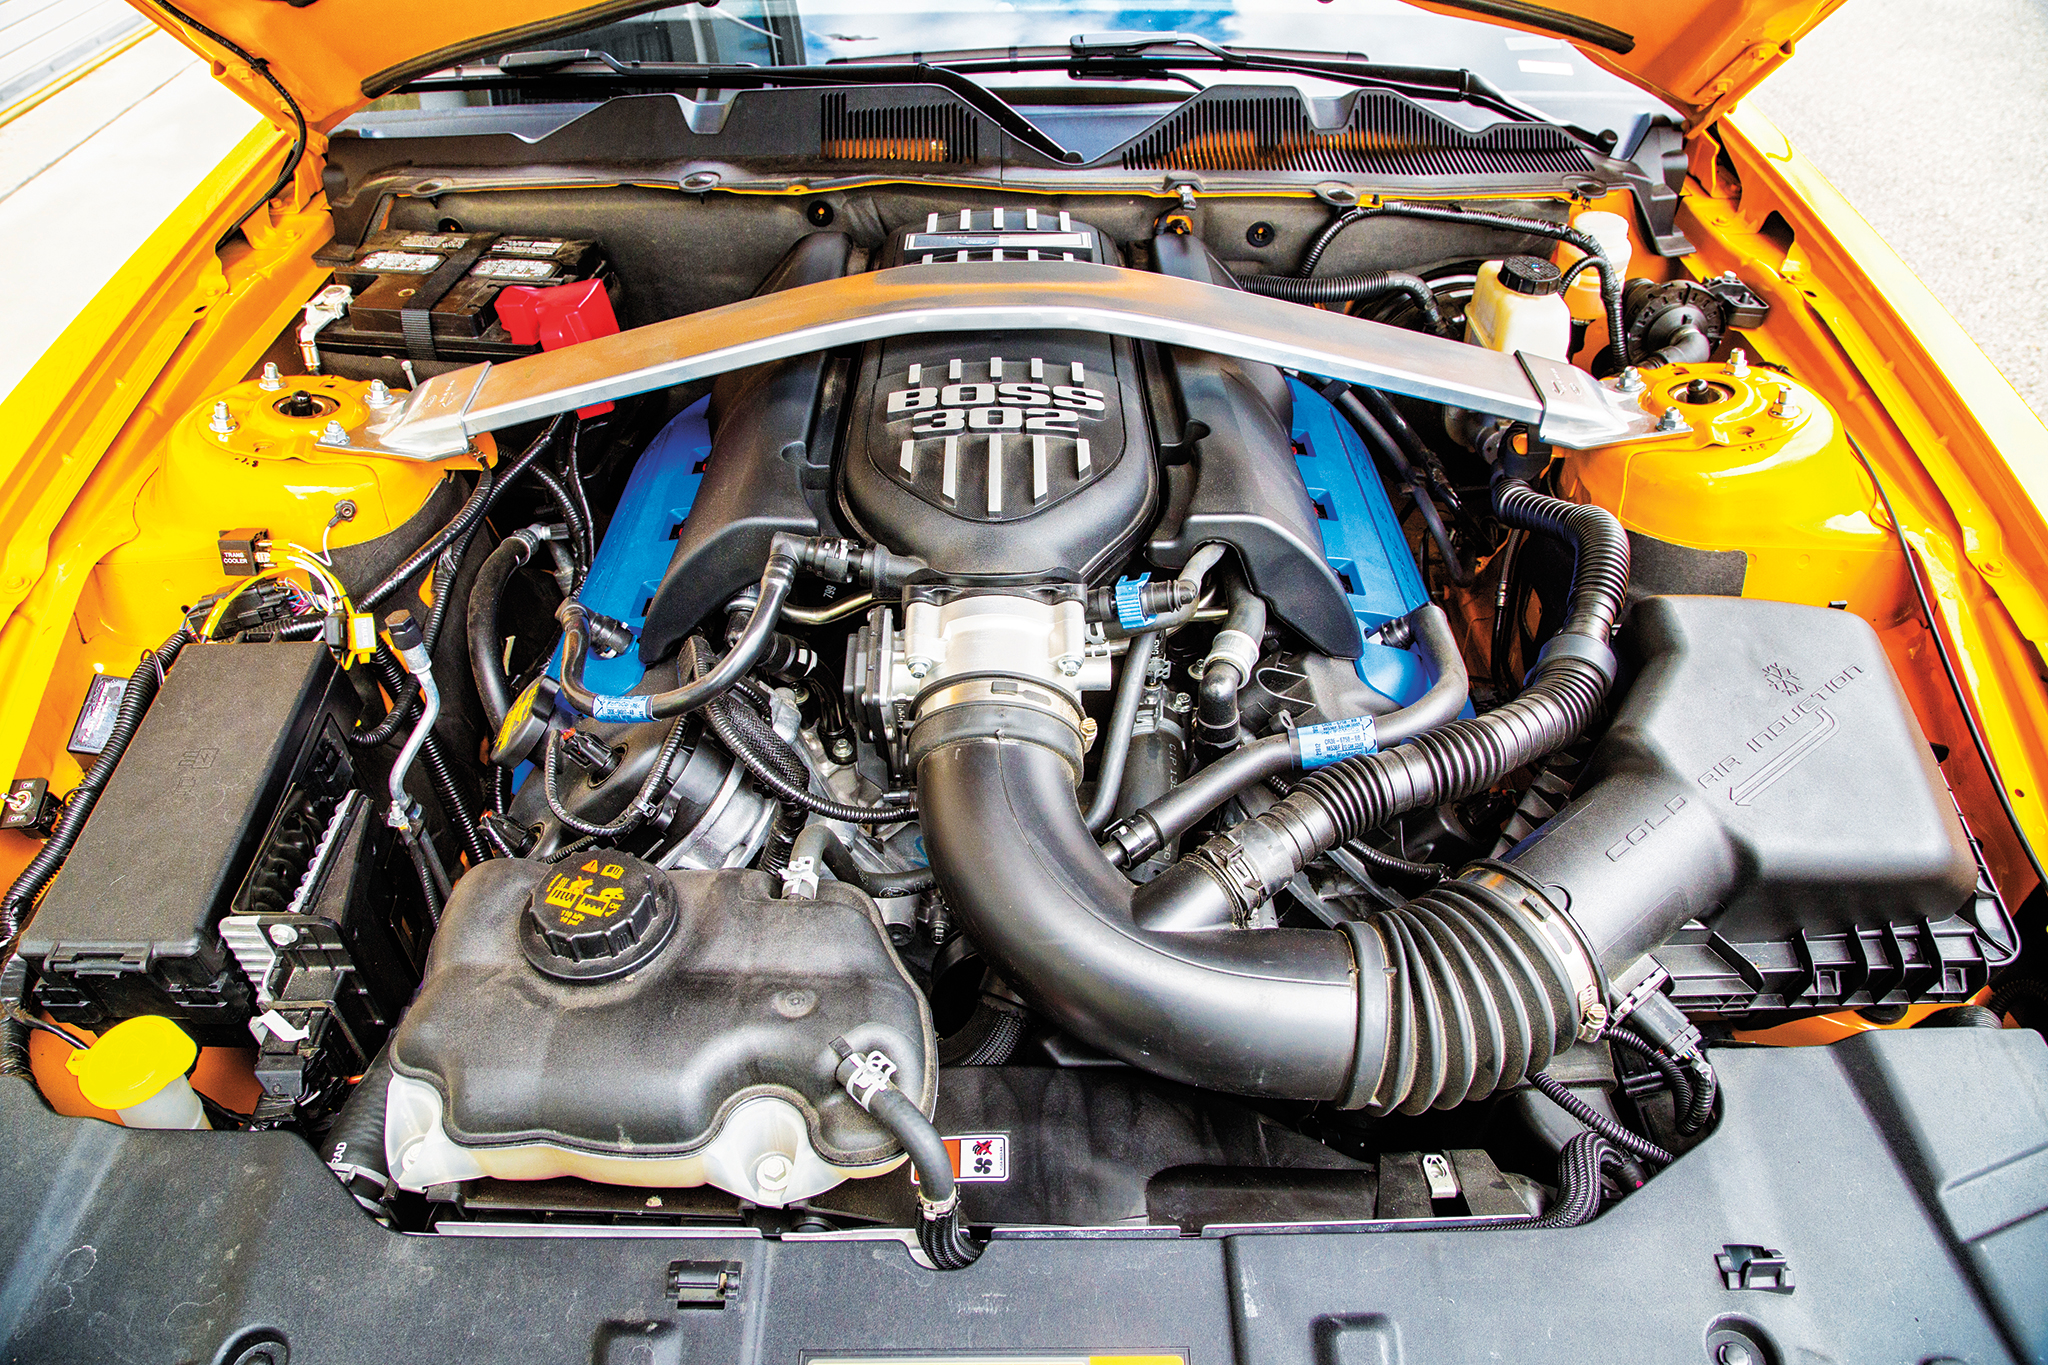 The '13 Boss 302 is a 5.0L V8, rated at 444 hp. Owner Jack Goldey hasn't modified it…yet.